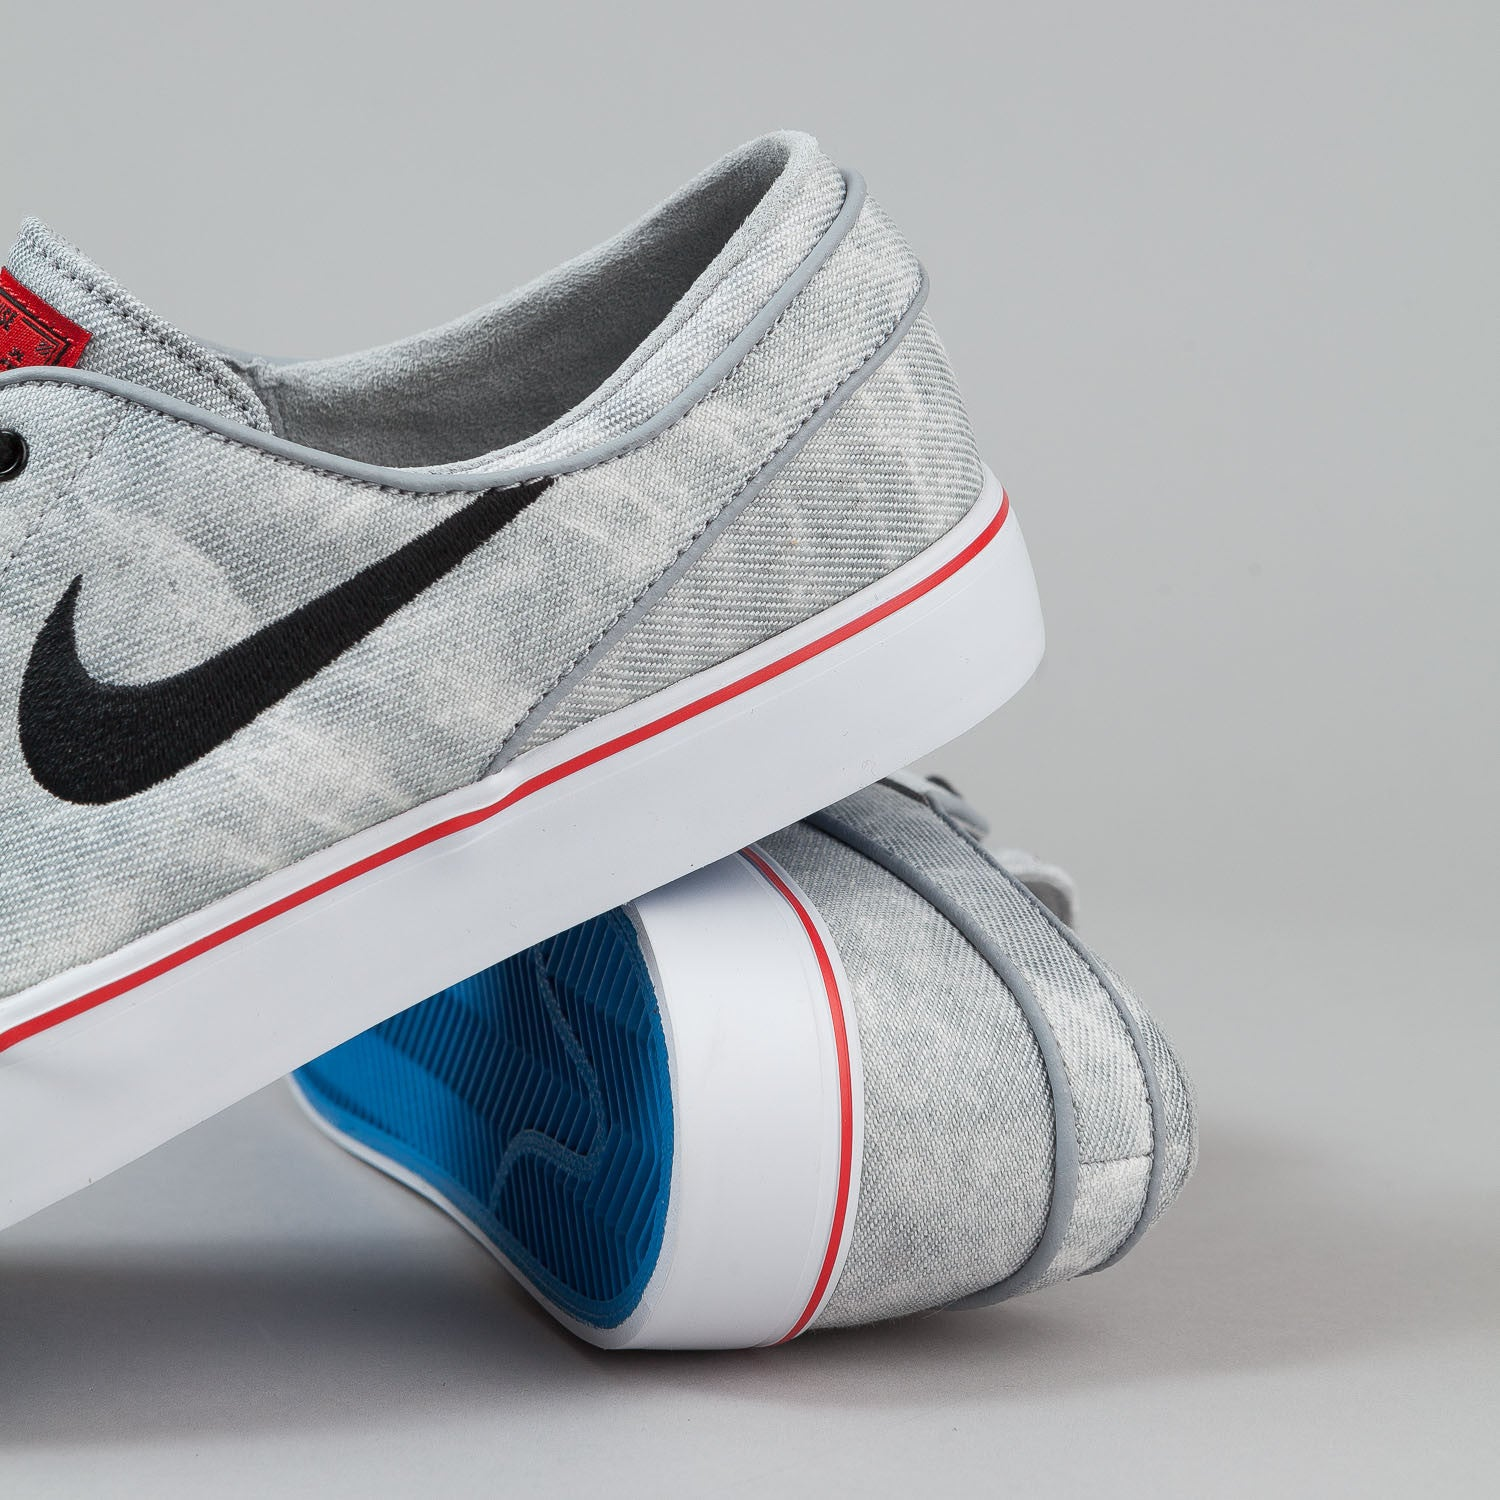 Nike SB Stefan Janoski CNVS PR QS Shoes 'Mexico City' - Wolf Grey / Black / White